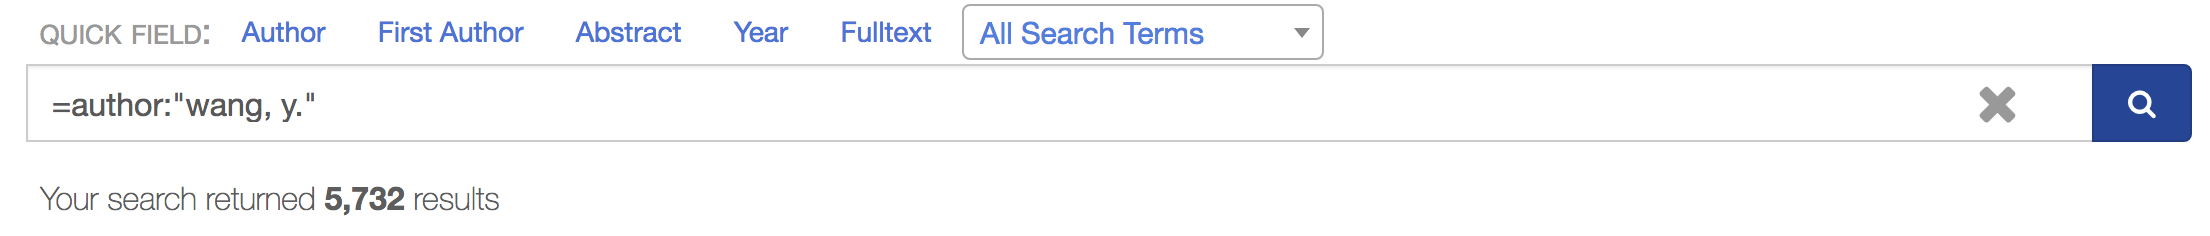 Exact    name matching query with full family name and given name    initial. 5732 total search results.